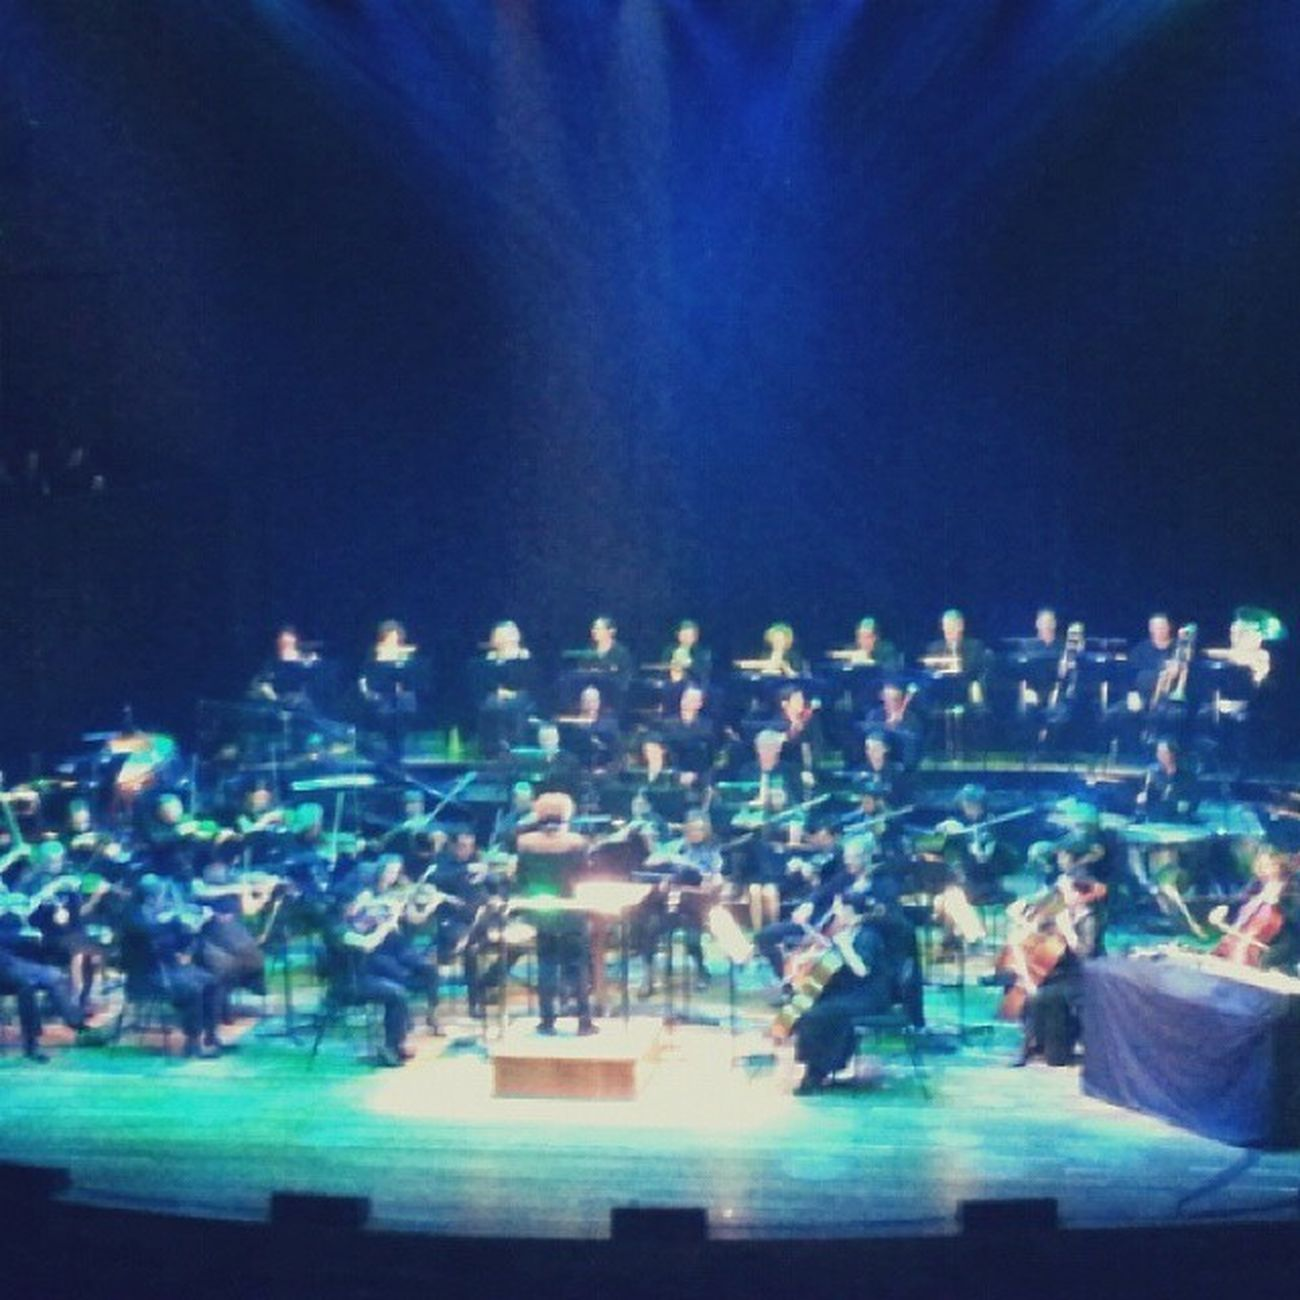 Dj Jeffmills Melbourne Symphony orchestra techno music classical melbournefestival doof beautiful hamerhall